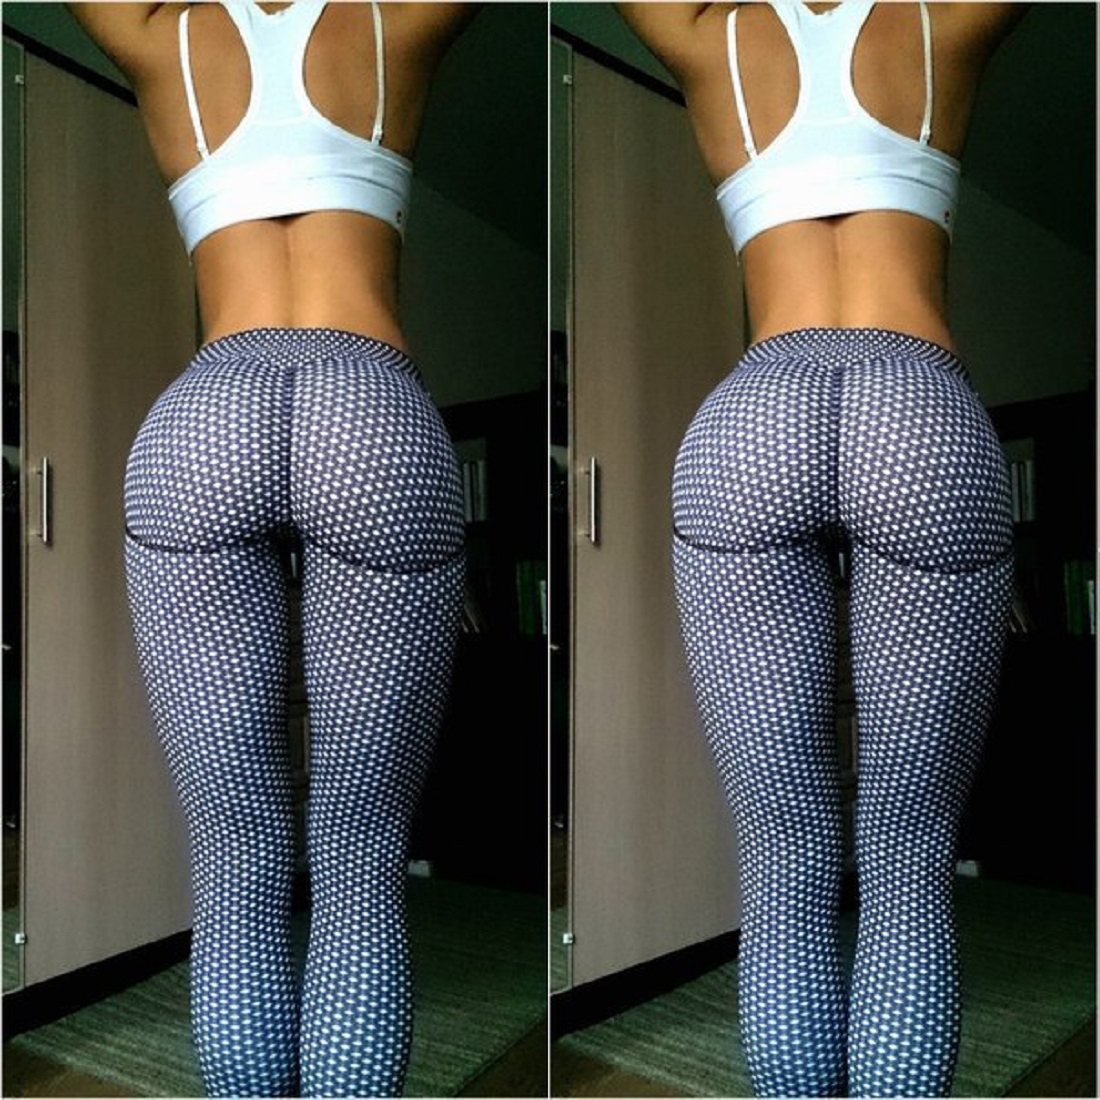 Sexy Women Sports Fitness Gym Yoga Stretch Pants Running -3500